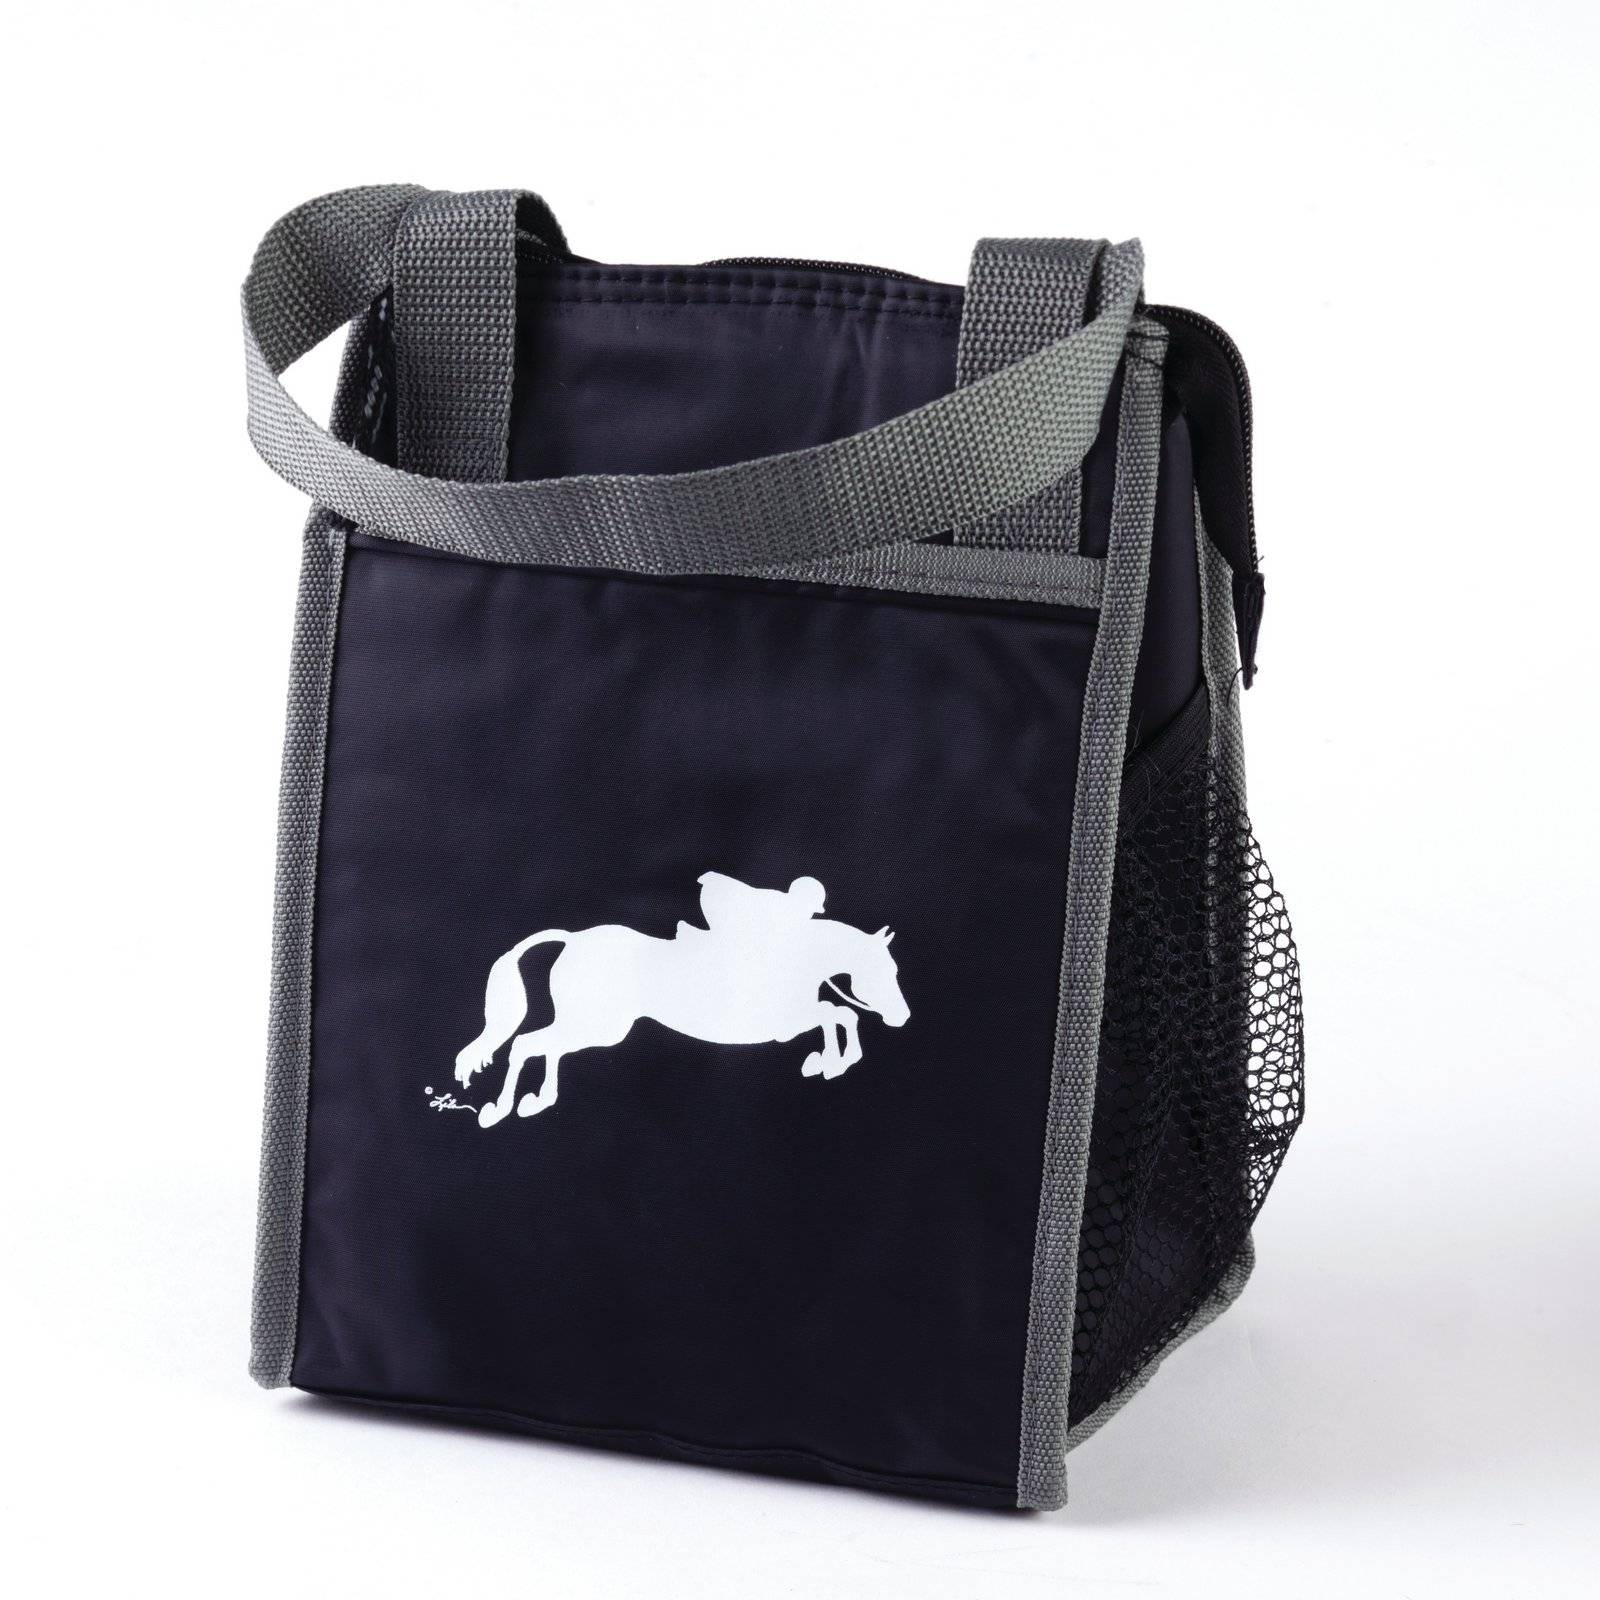 Kelley Jumper Horse Lunch Sack